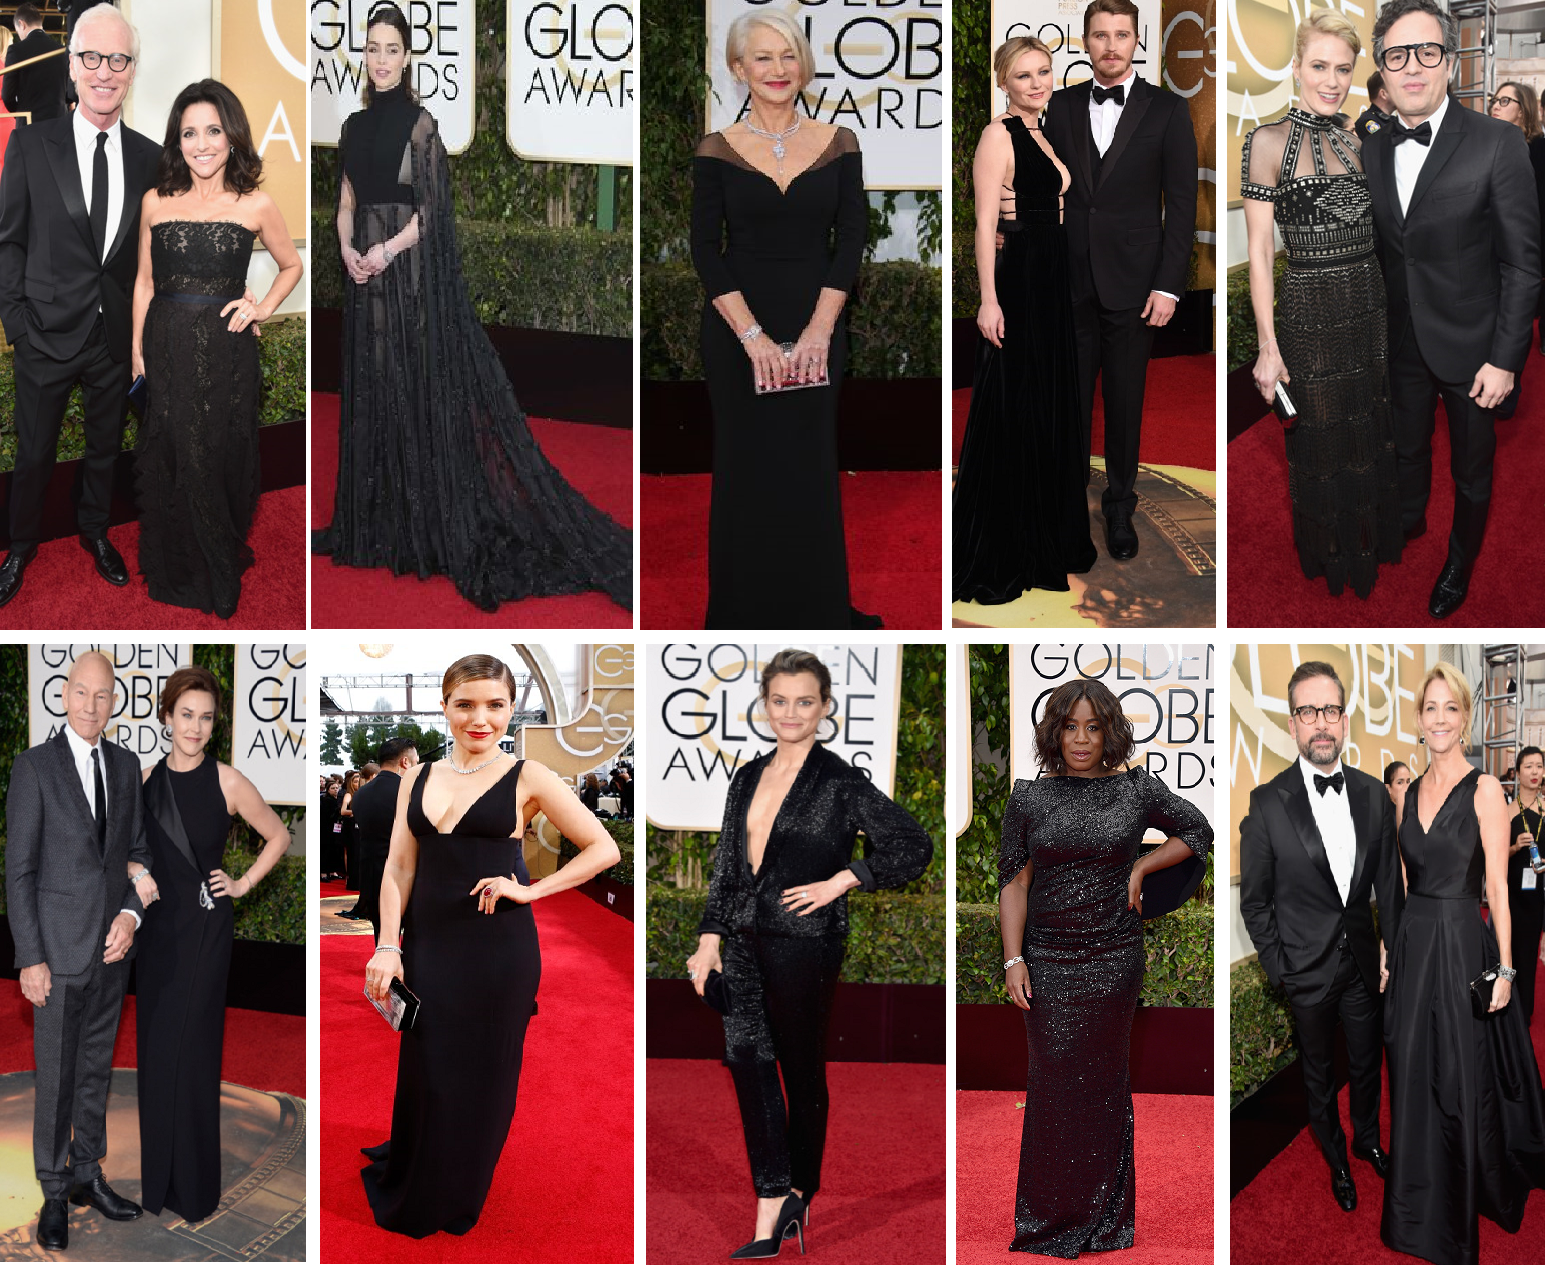 Julia Louis-Dreyfus in Lanvin with Brad Hall, Emilia Clarke in a Valentino gown and cape befitting of a Khaleesi, Kirsten Dunst in Valentino Haute Couture with Garrett Hedlund, Sunrise Coigney with hubby Mark Ruffalo, Sunny Ozell with Patrick Stewart, Sophia Bush in Narciso Rodriguez, Orange is the New Black's Taylor Schilling Thakoon's black bugle beaded evening suit, Co-star Uzo Aduba in a black sequined number and Nancy Carell with comedian hubby Steve Carell